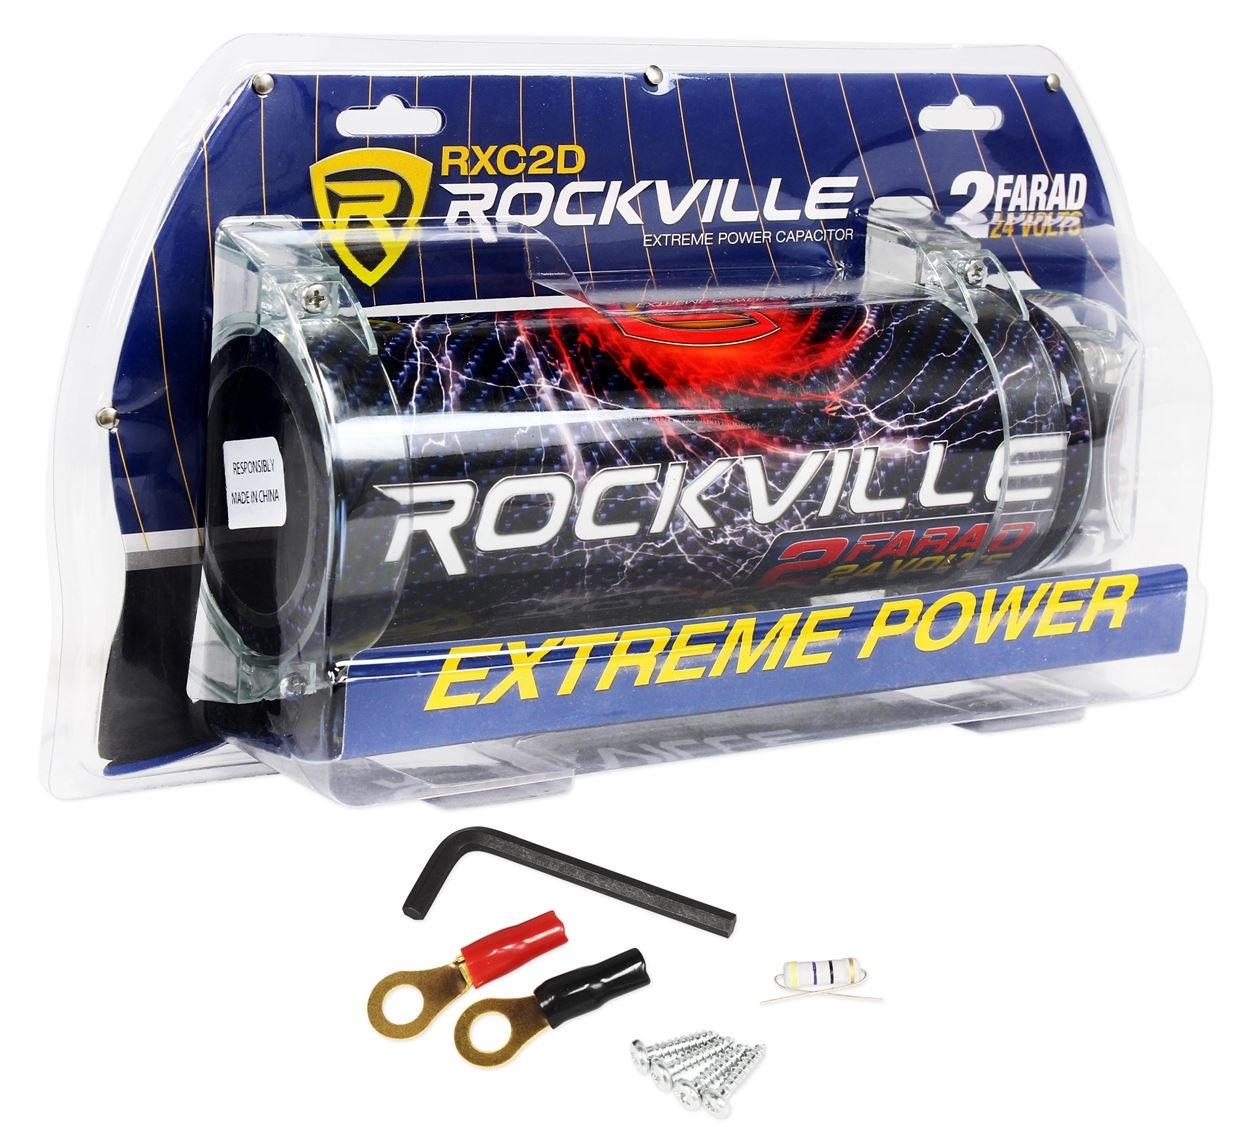 Rockville Rda0 4k 0 4 Gauge Dual Amplifier Installation 3000watt 0awg Subwoofer Amp Wiring Kit 150amp Anl 2 Farad Capacitor Car Electronics